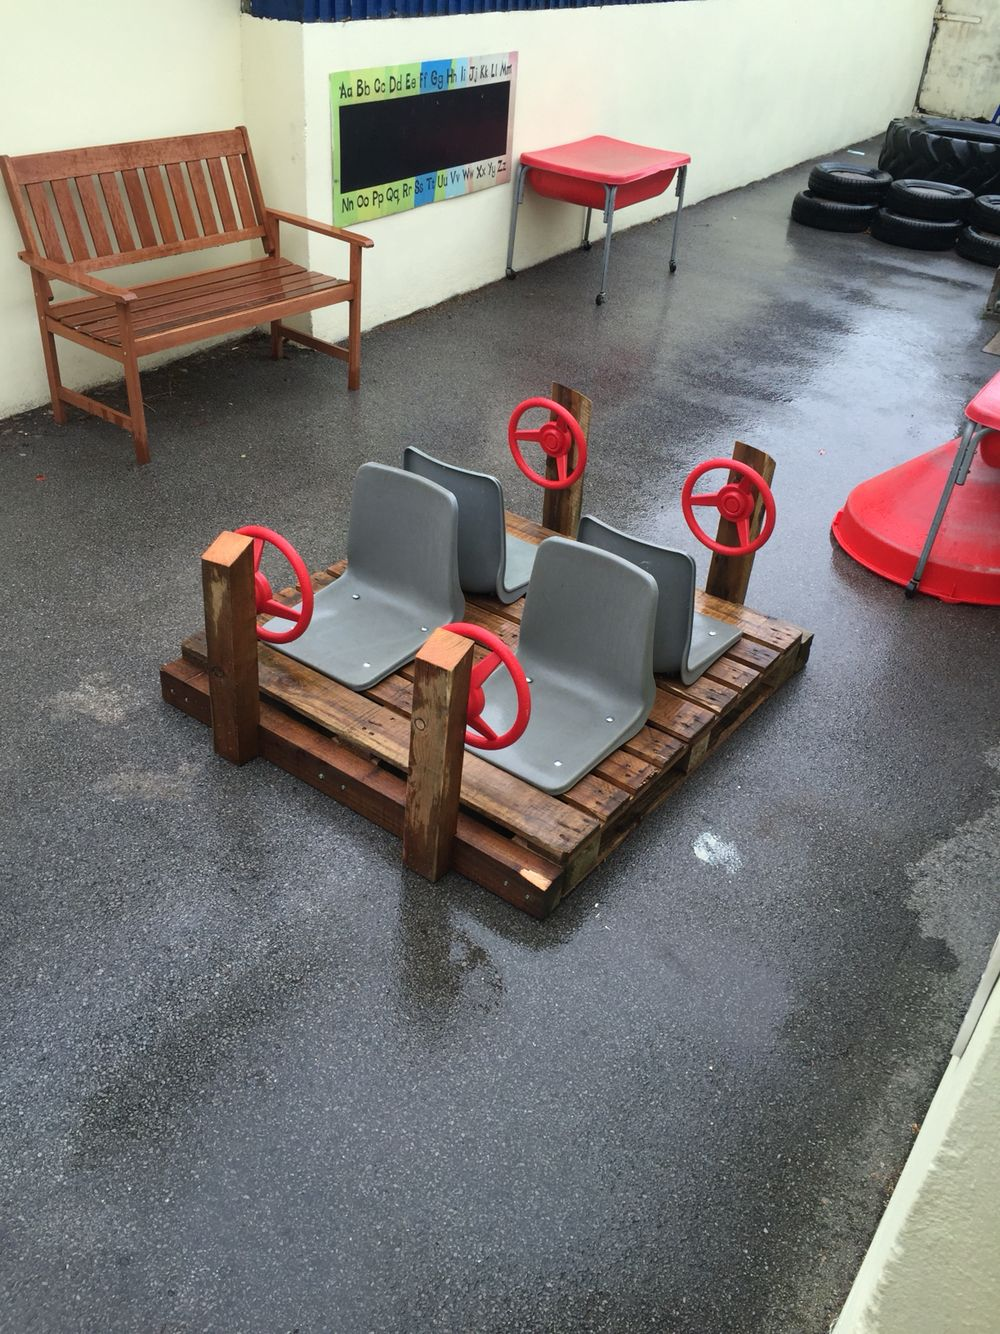 More 2YRS AND UP PHG3.1 SE4.1 | Daycare playground ...